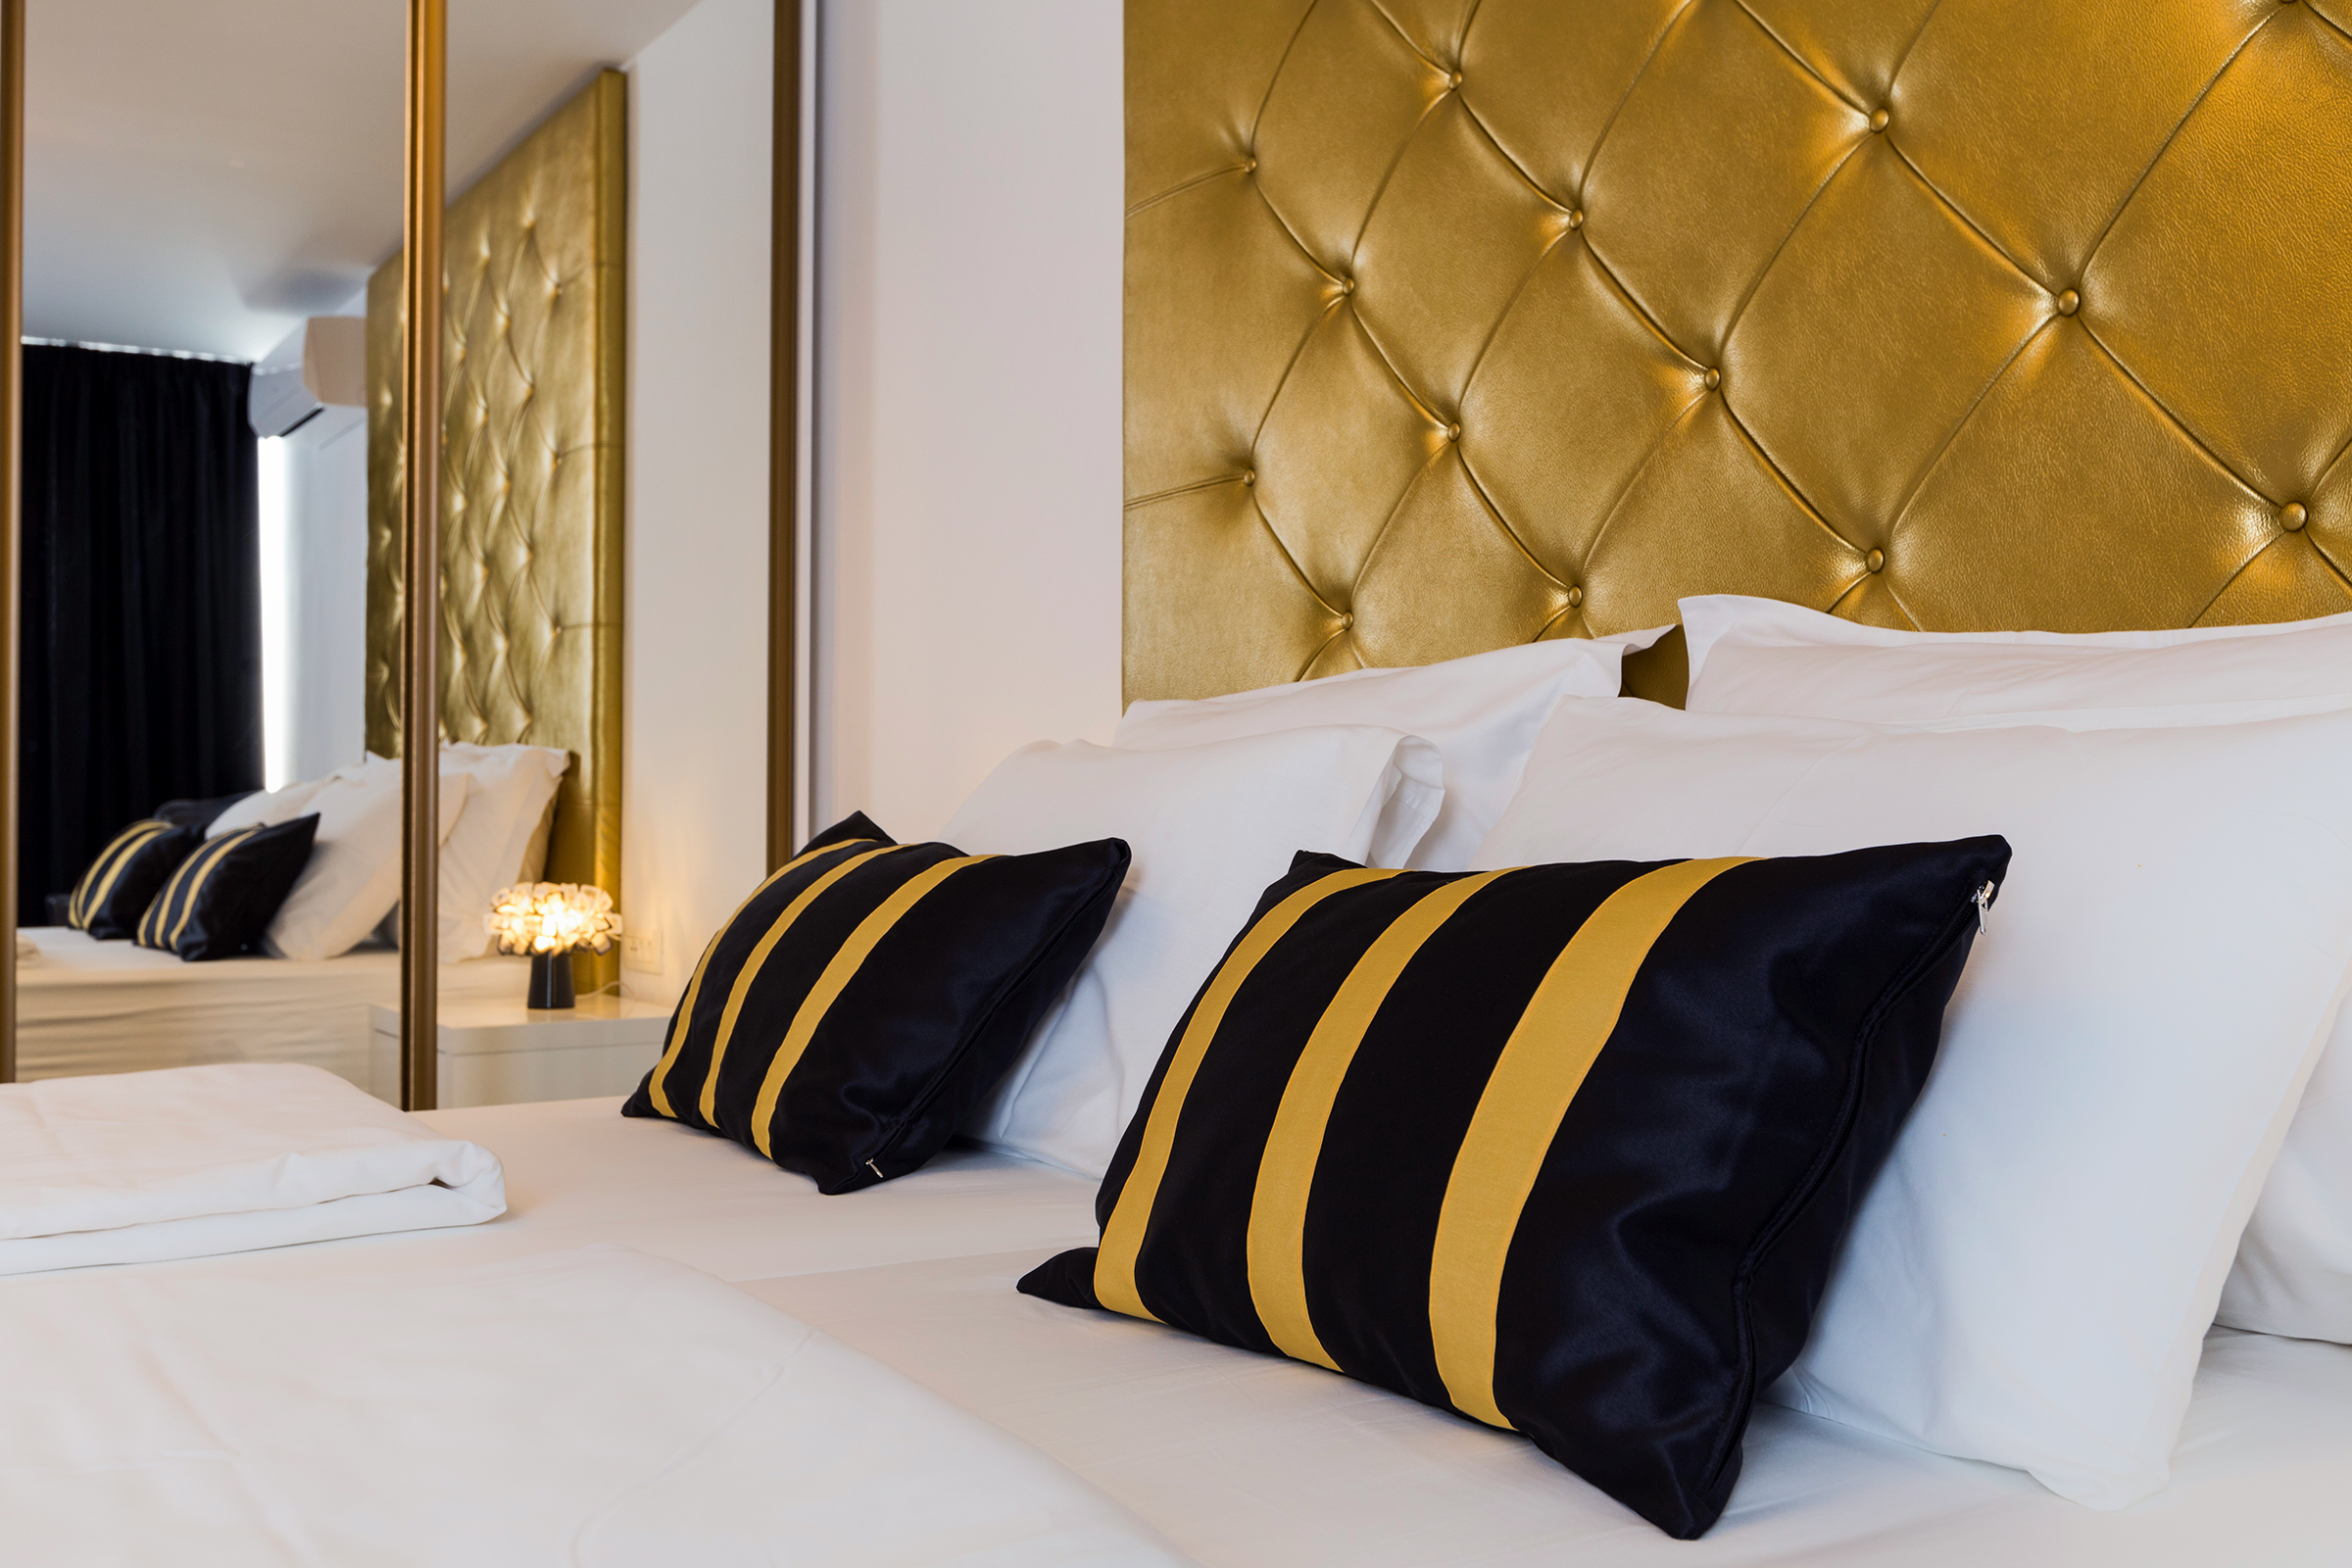 Bgold Suite 2 Vacation And Relaxation Accommodation Split